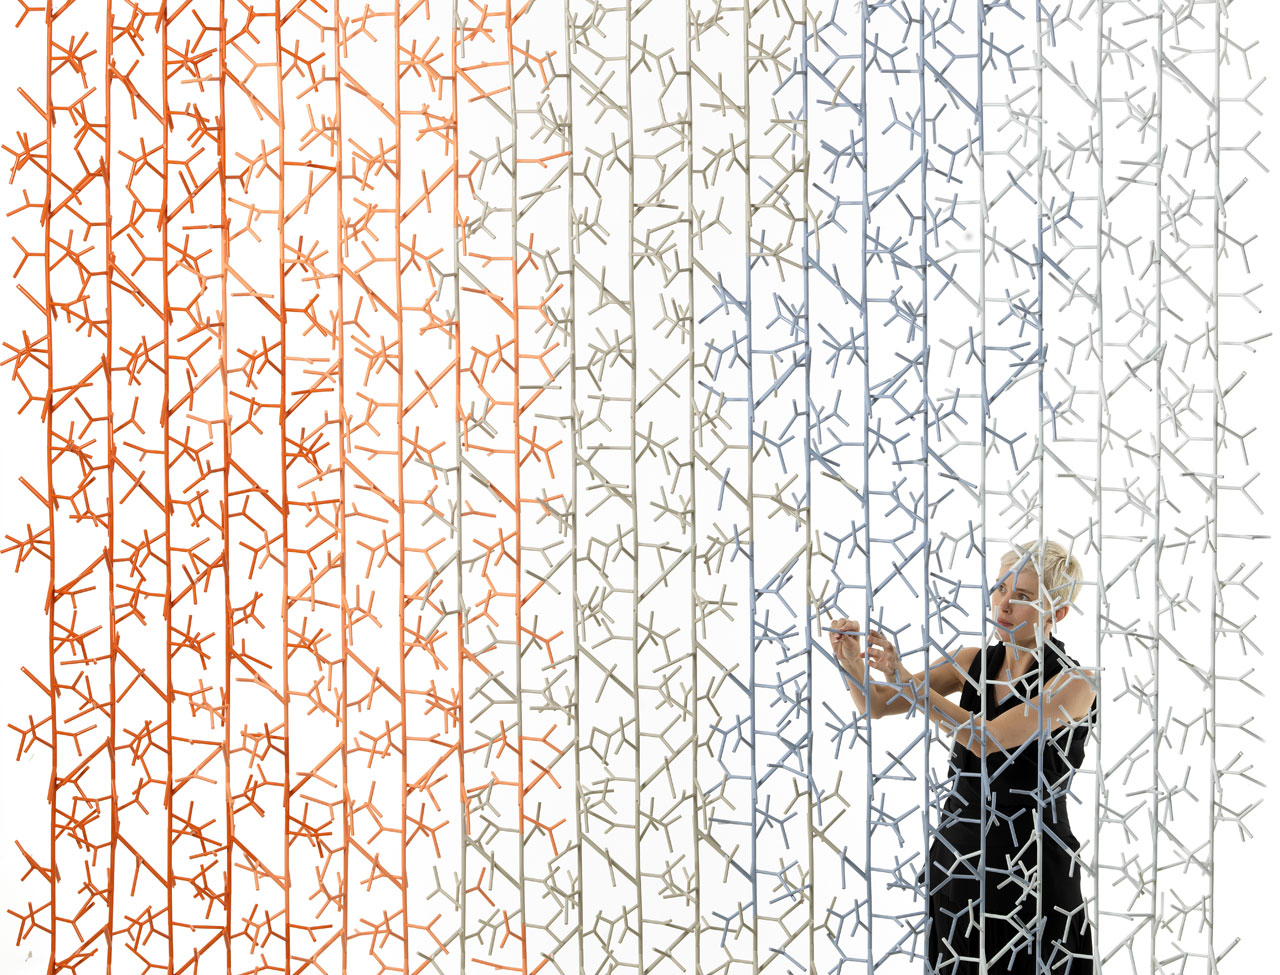 The 'Amass' screen was developed as an installation work for London Design Festival in 2013. The screen resembles random twigs but is a high-tech and highly complex solution.